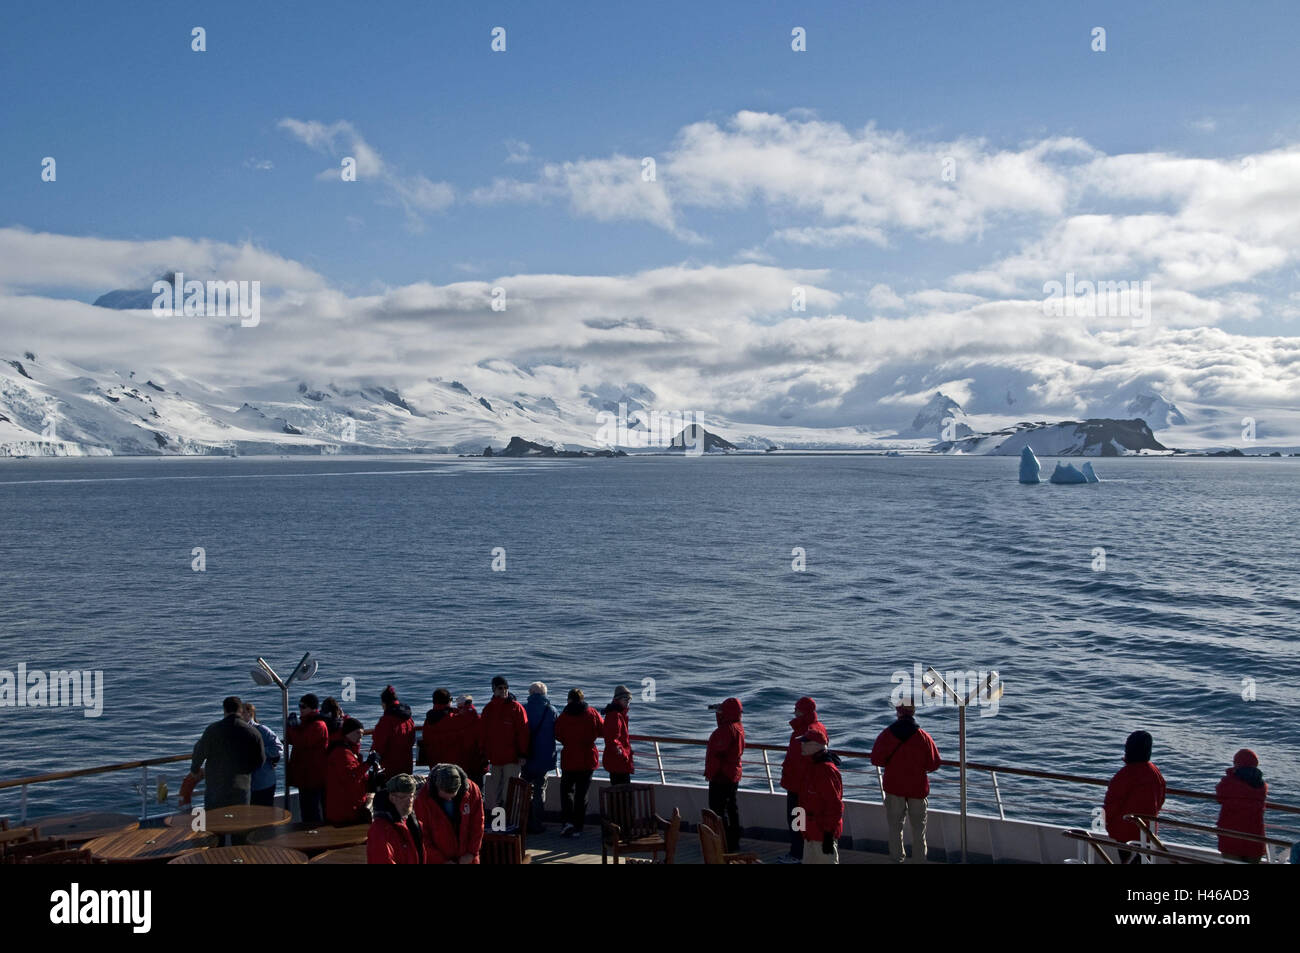 Antarctic, South Shetland islands, Livingston island, mountains, ship, tourists, - Stock Image